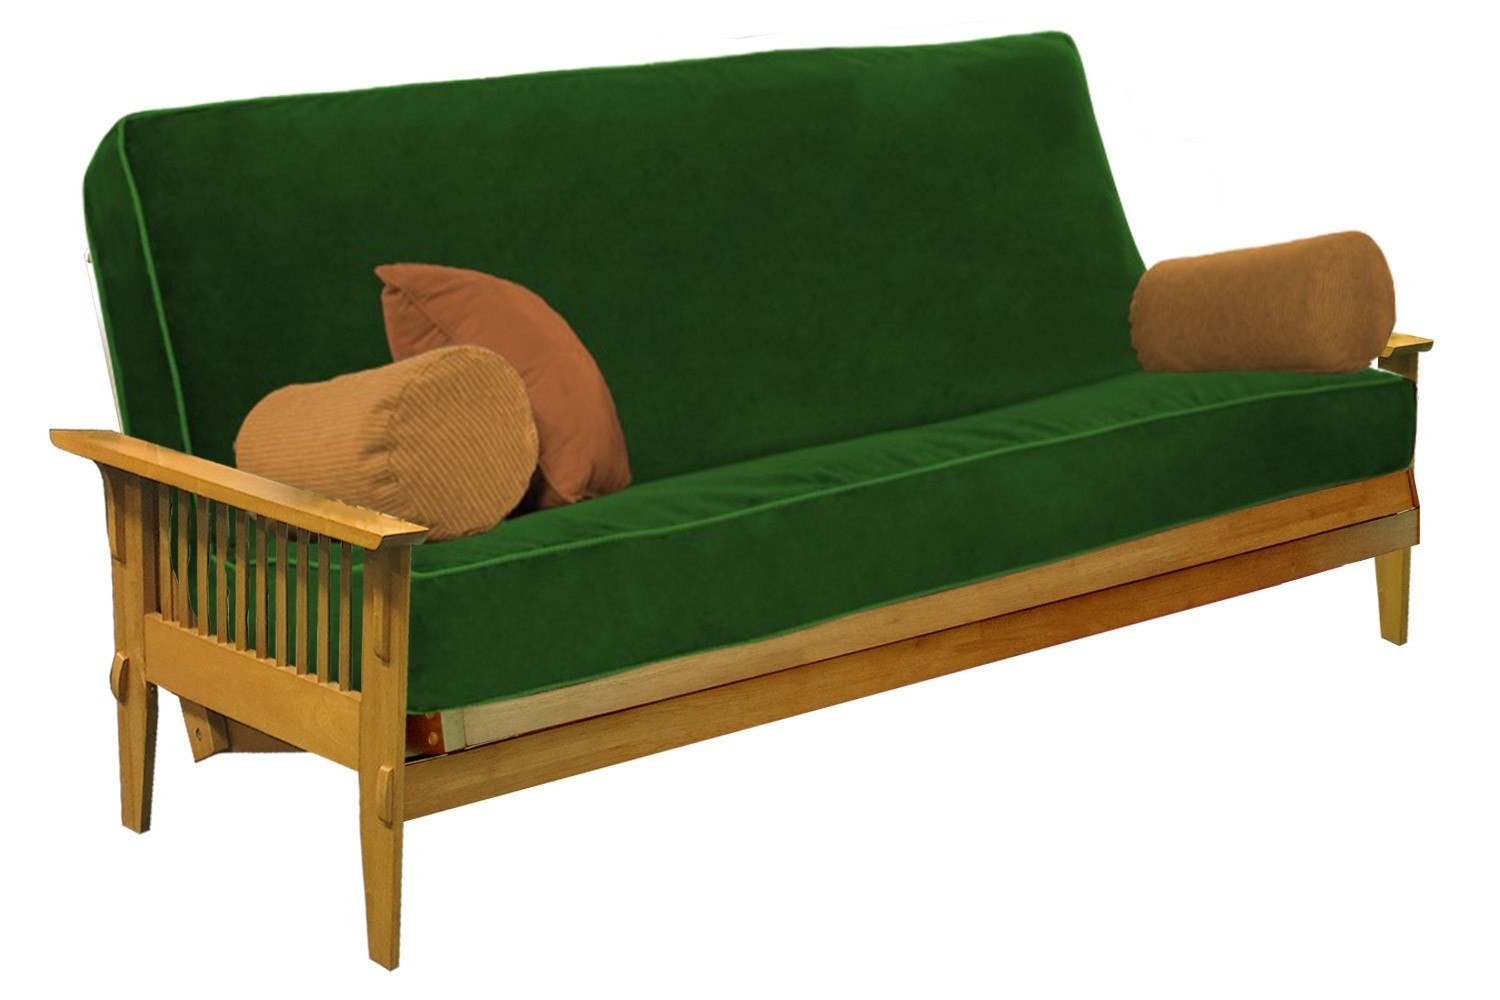 Wooden Futon Frame Oak | San Mateo Sofa Futon | The Futon Shop Inside Matteo Arm Sofa Chairs (View 15 of 25)